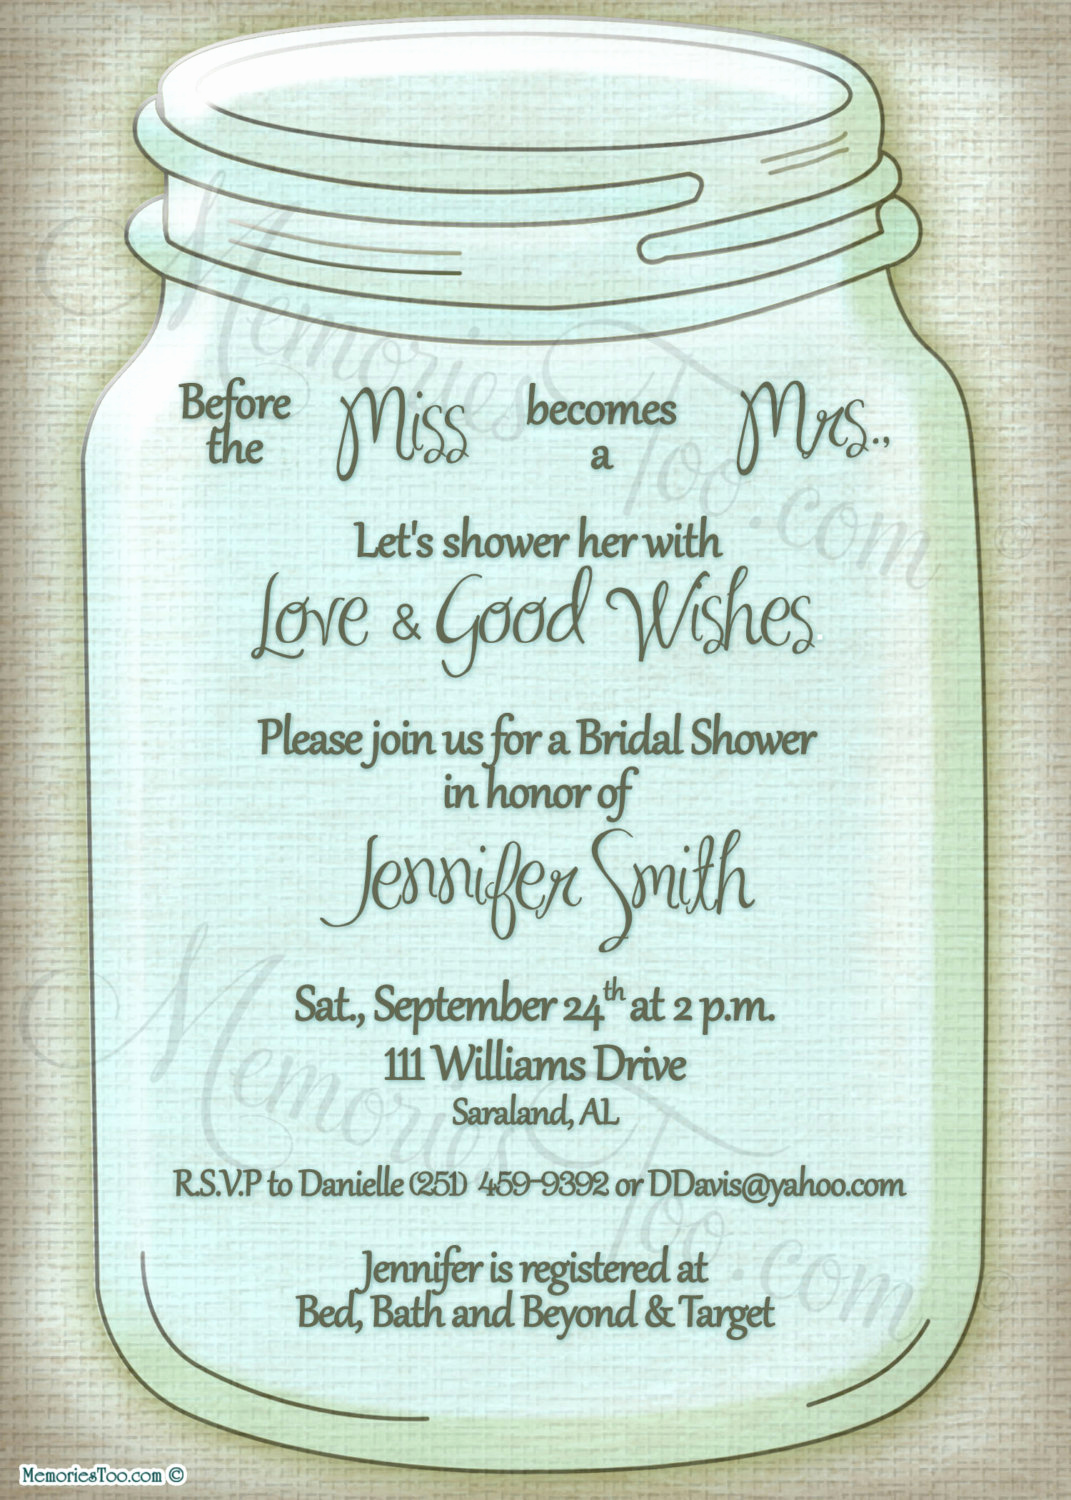 Mason Jar Invitation Template Unique Mason Ball Jar Invitation Diy Printable Choose Your by